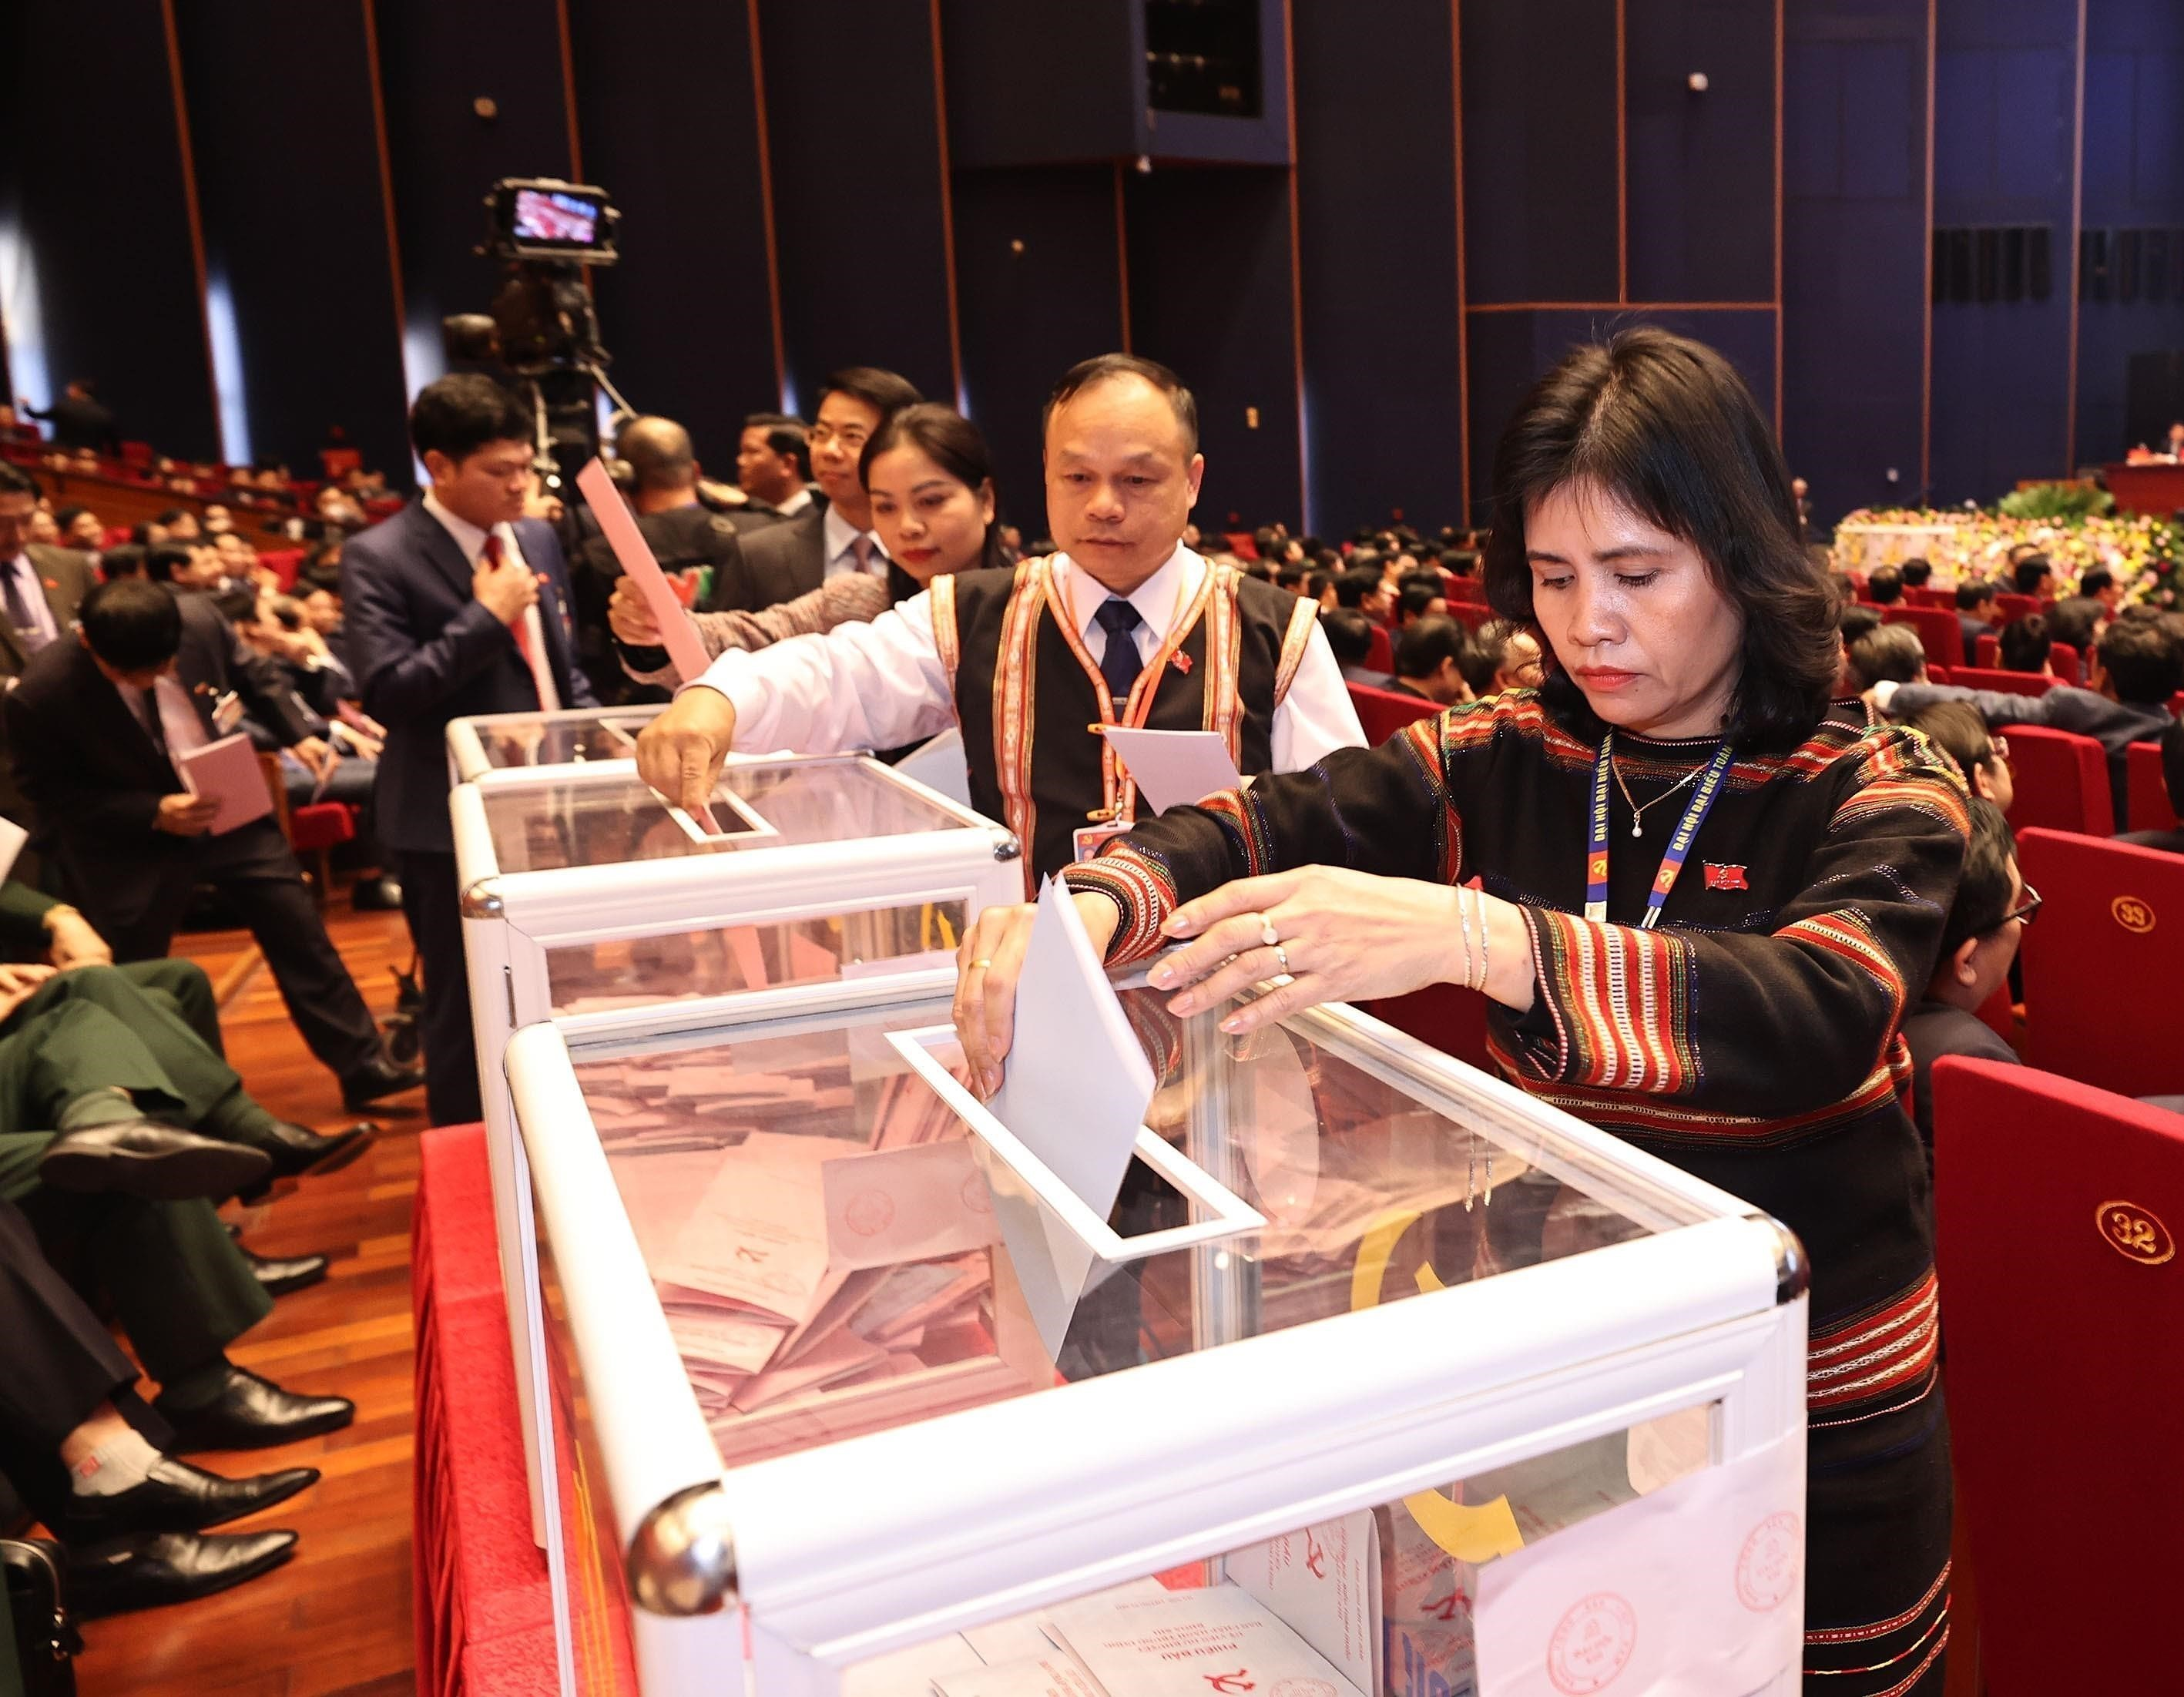 Congress conducts voting on 13th tenure Party Central Committee members hinh anh 3